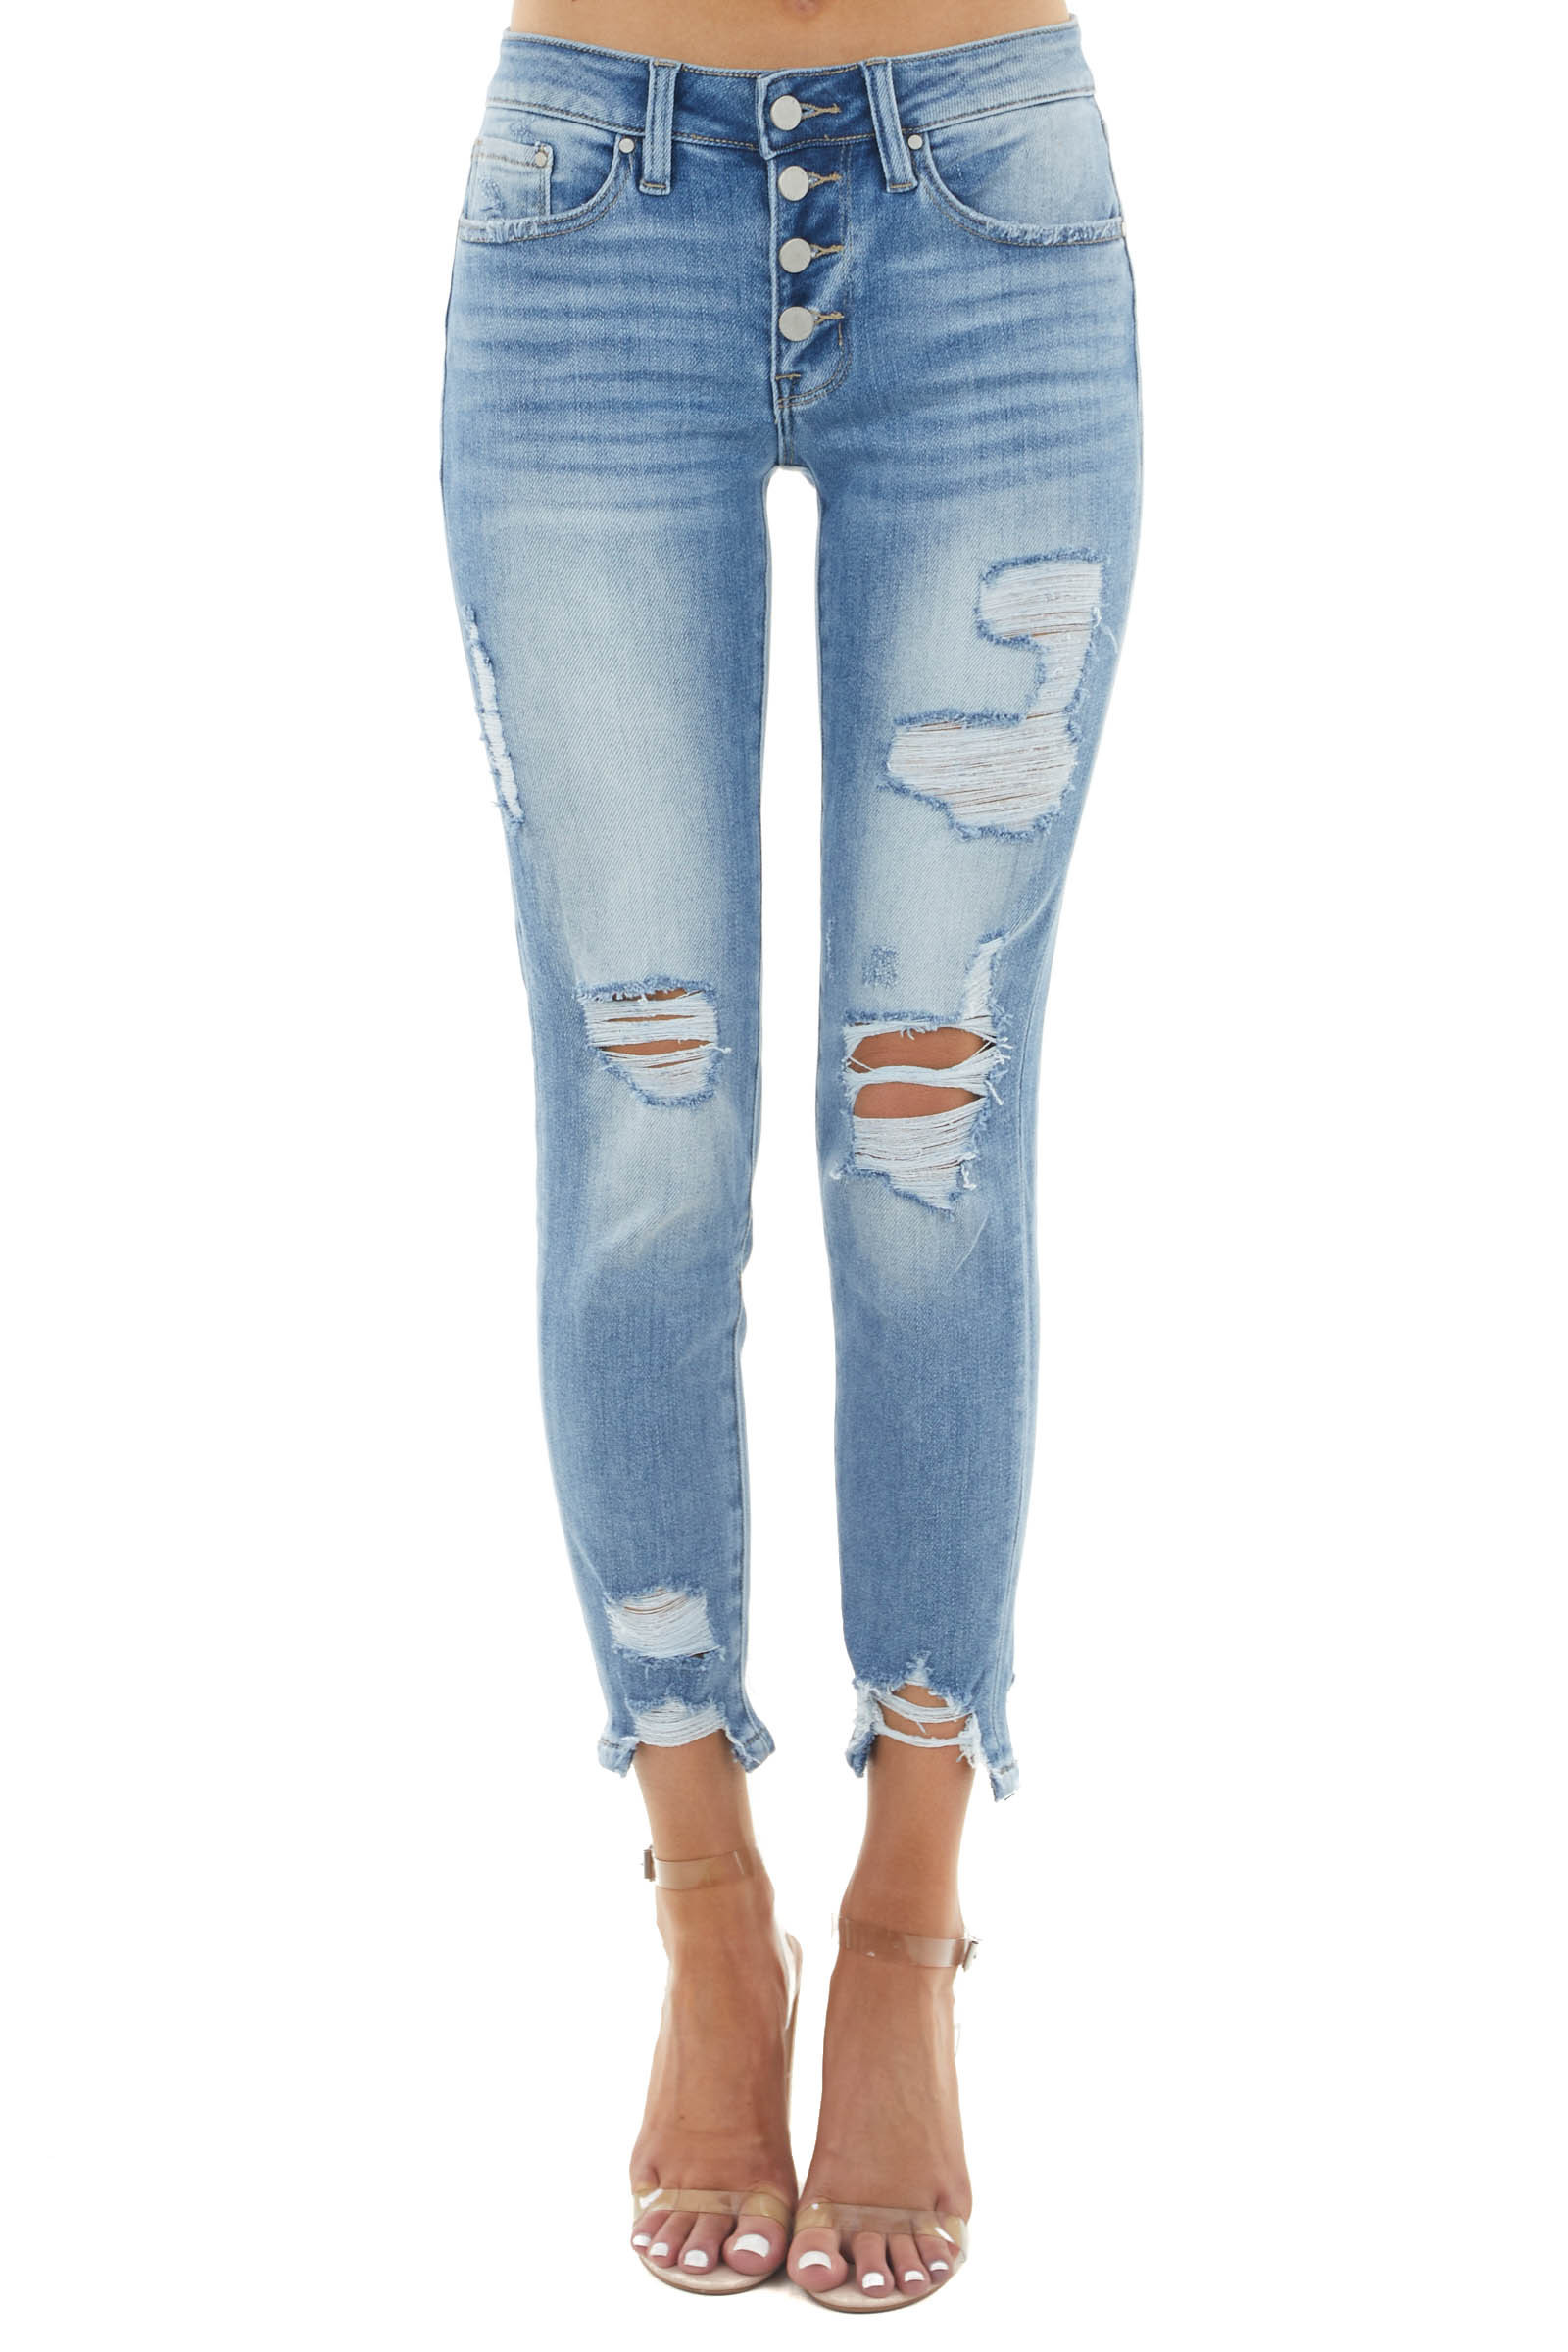 Light Wash Mid Rise Distressed Skinny Jeans with Buttons